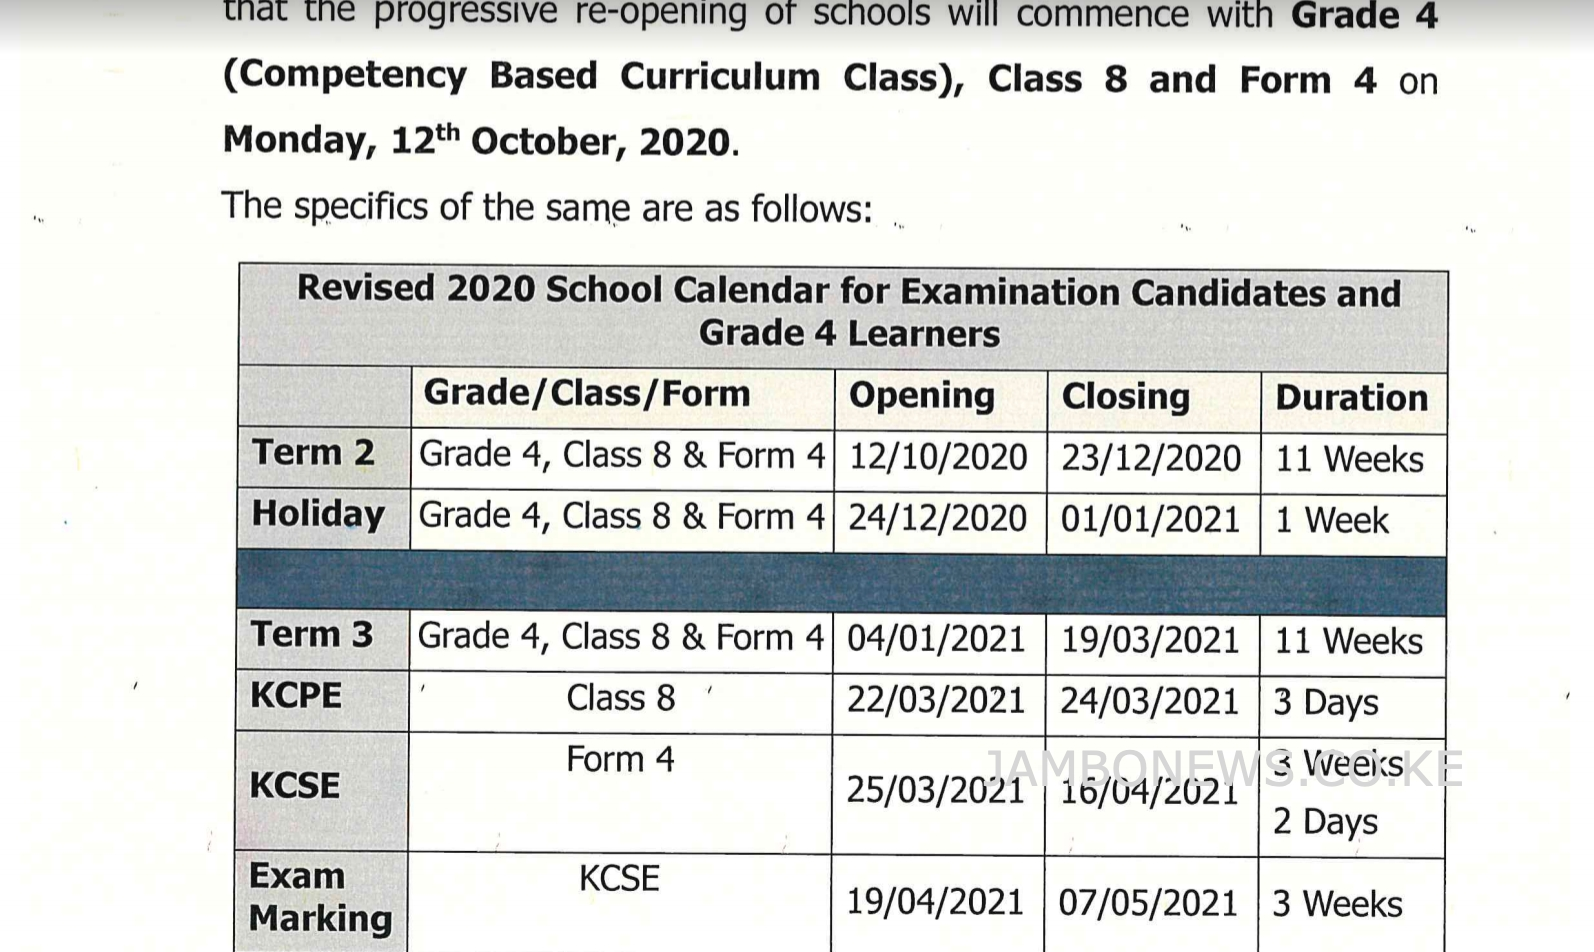 Moe Term Dates 2020/2021 For Grade 4, Class 8, Form 4  How Many Weeks In The 2021/19 Financial Year